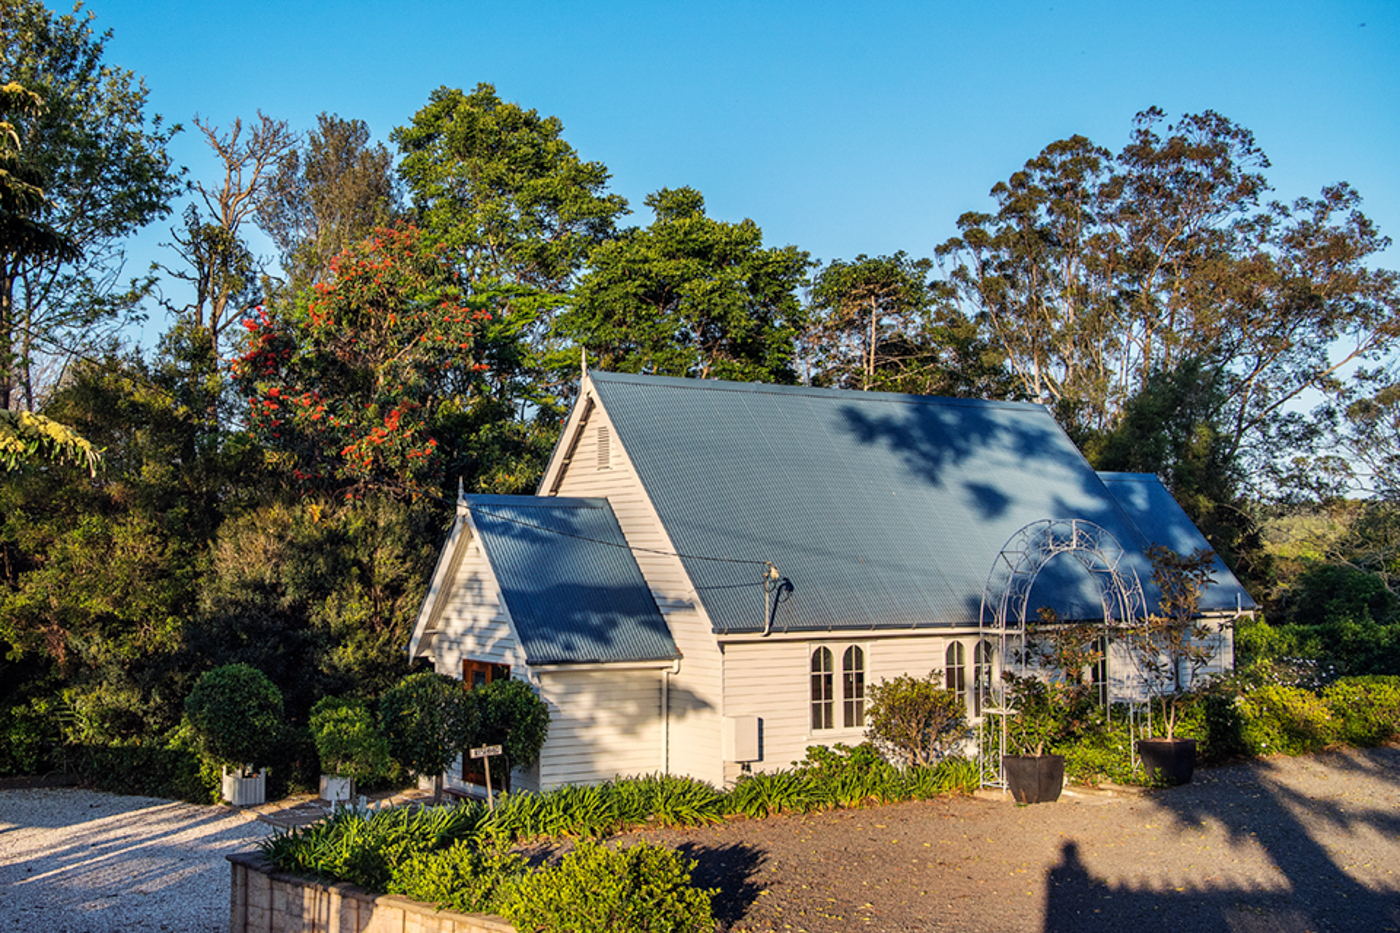 MALENT WEDDING VENUE - THE OLD DAIRY